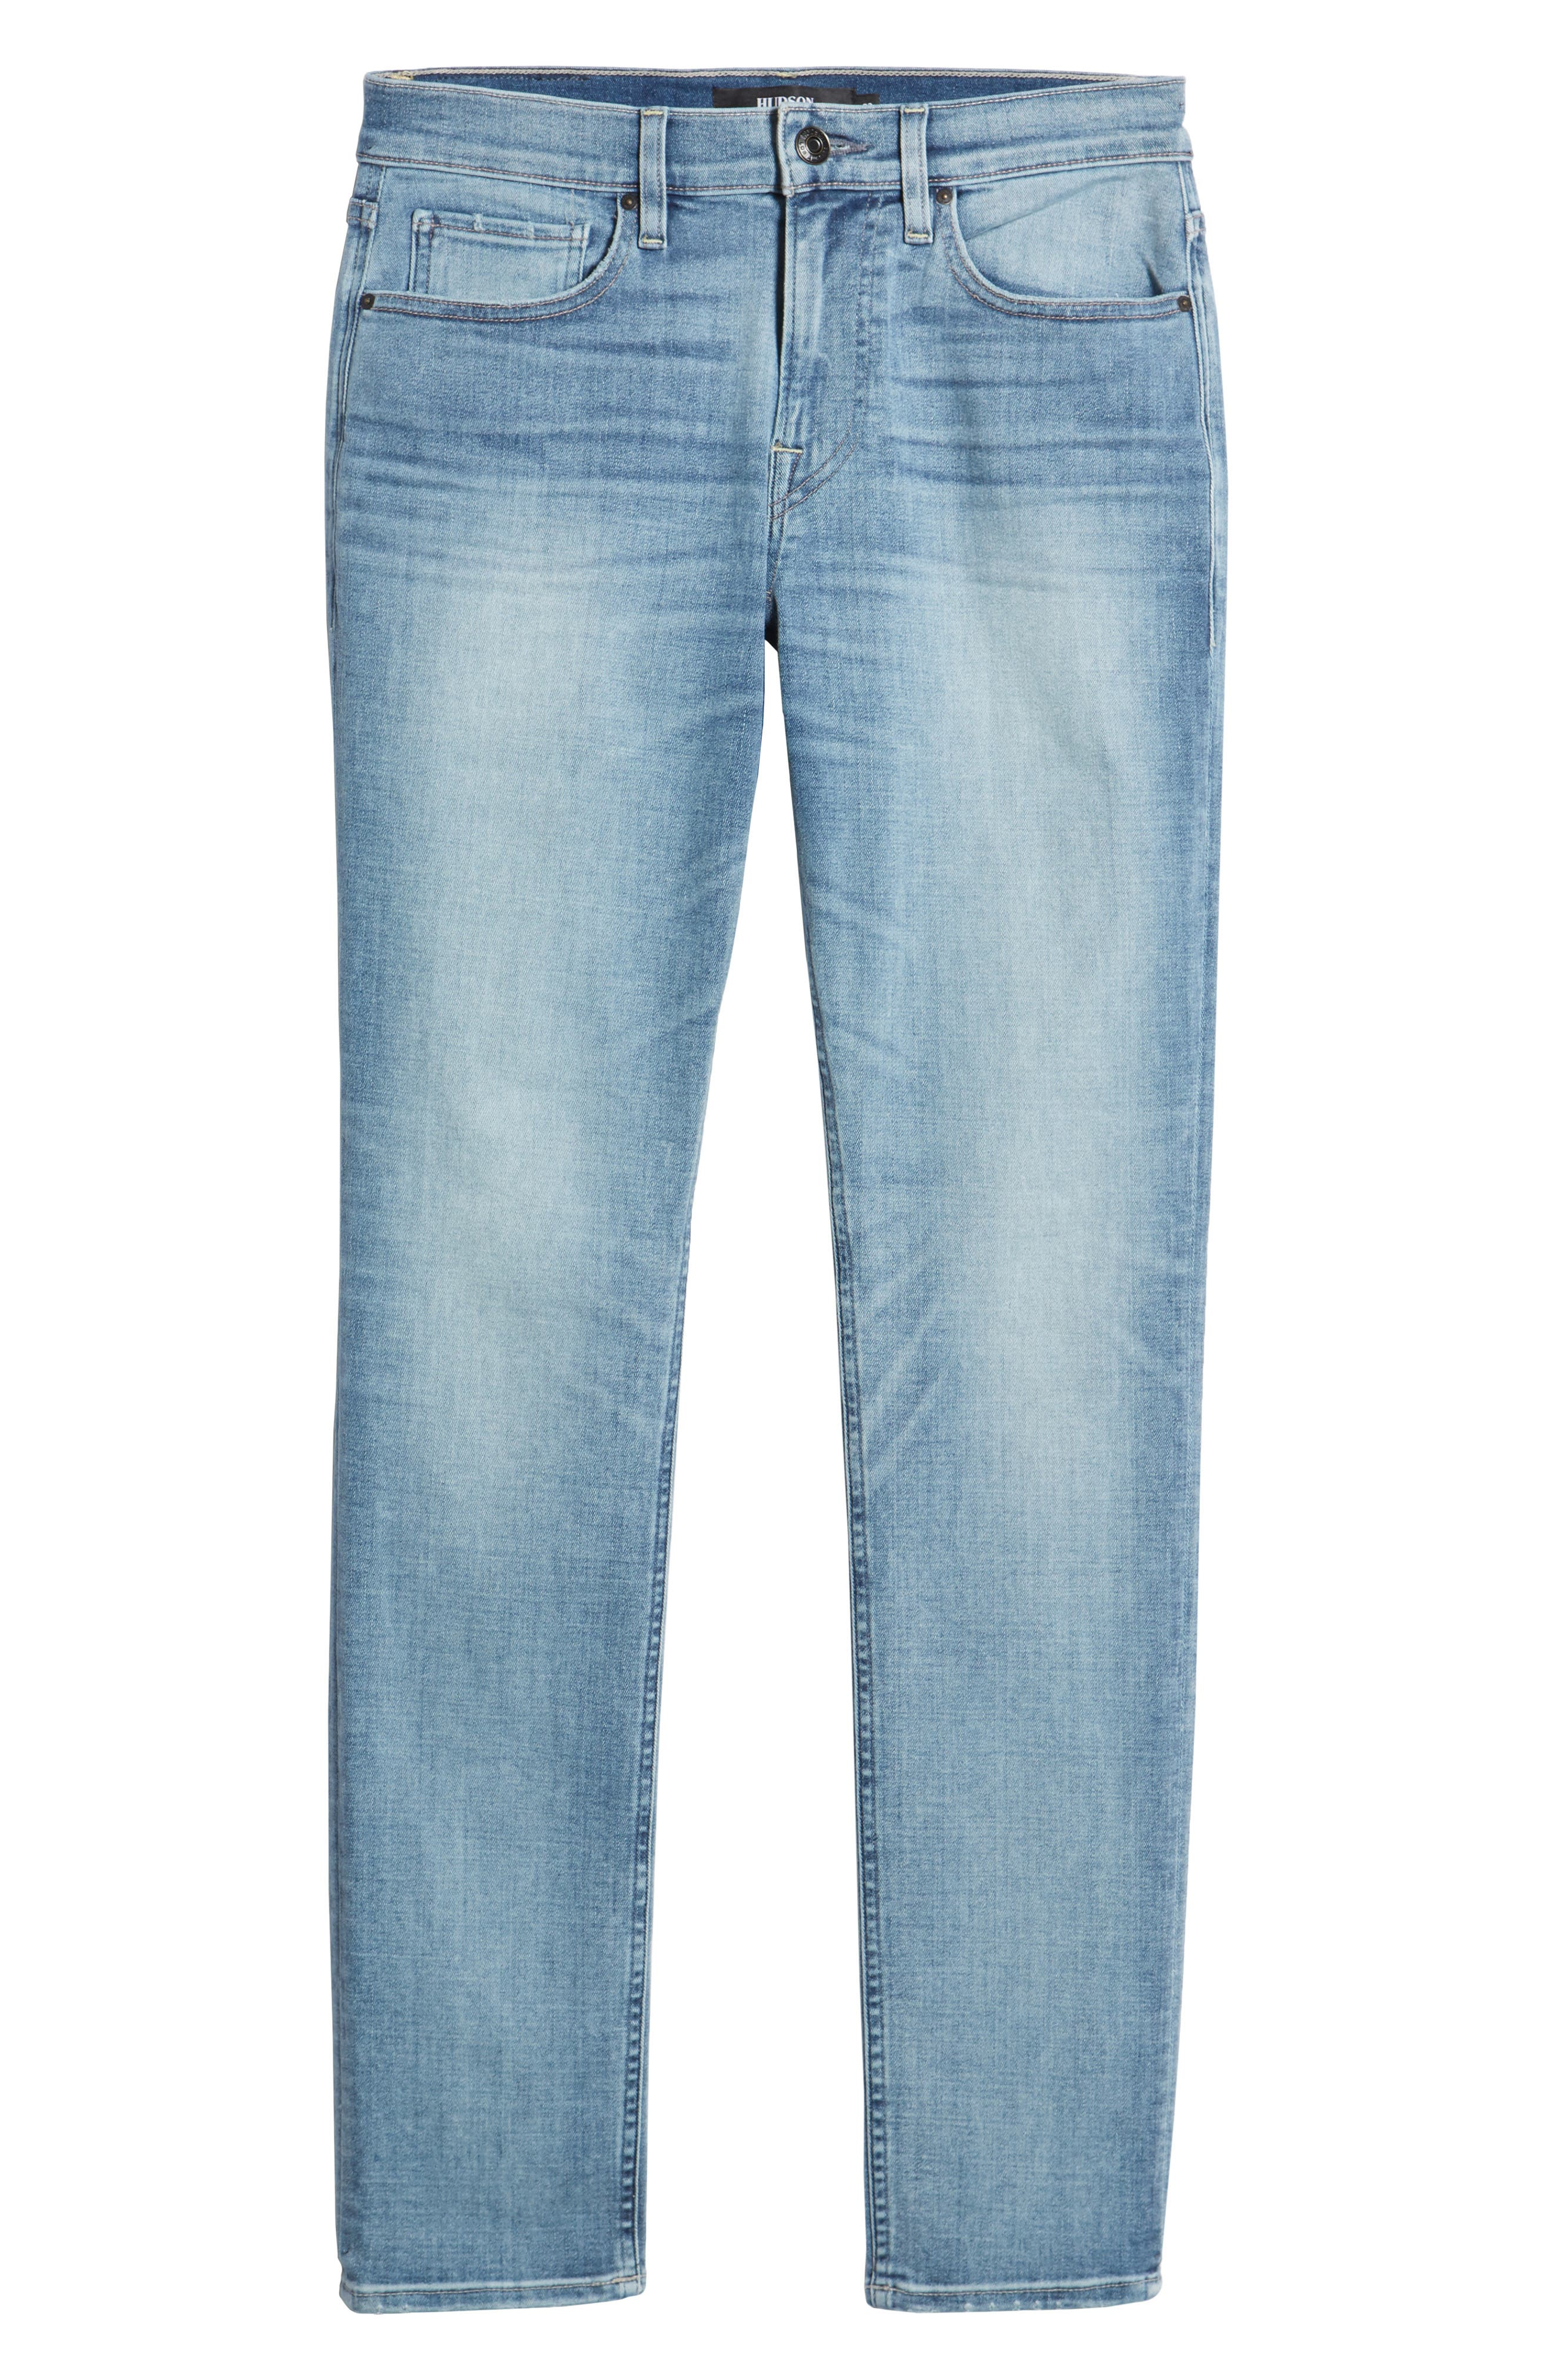 Axl Skinny Jeans,                             Alternate thumbnail 6, color,                             ROSEWEL